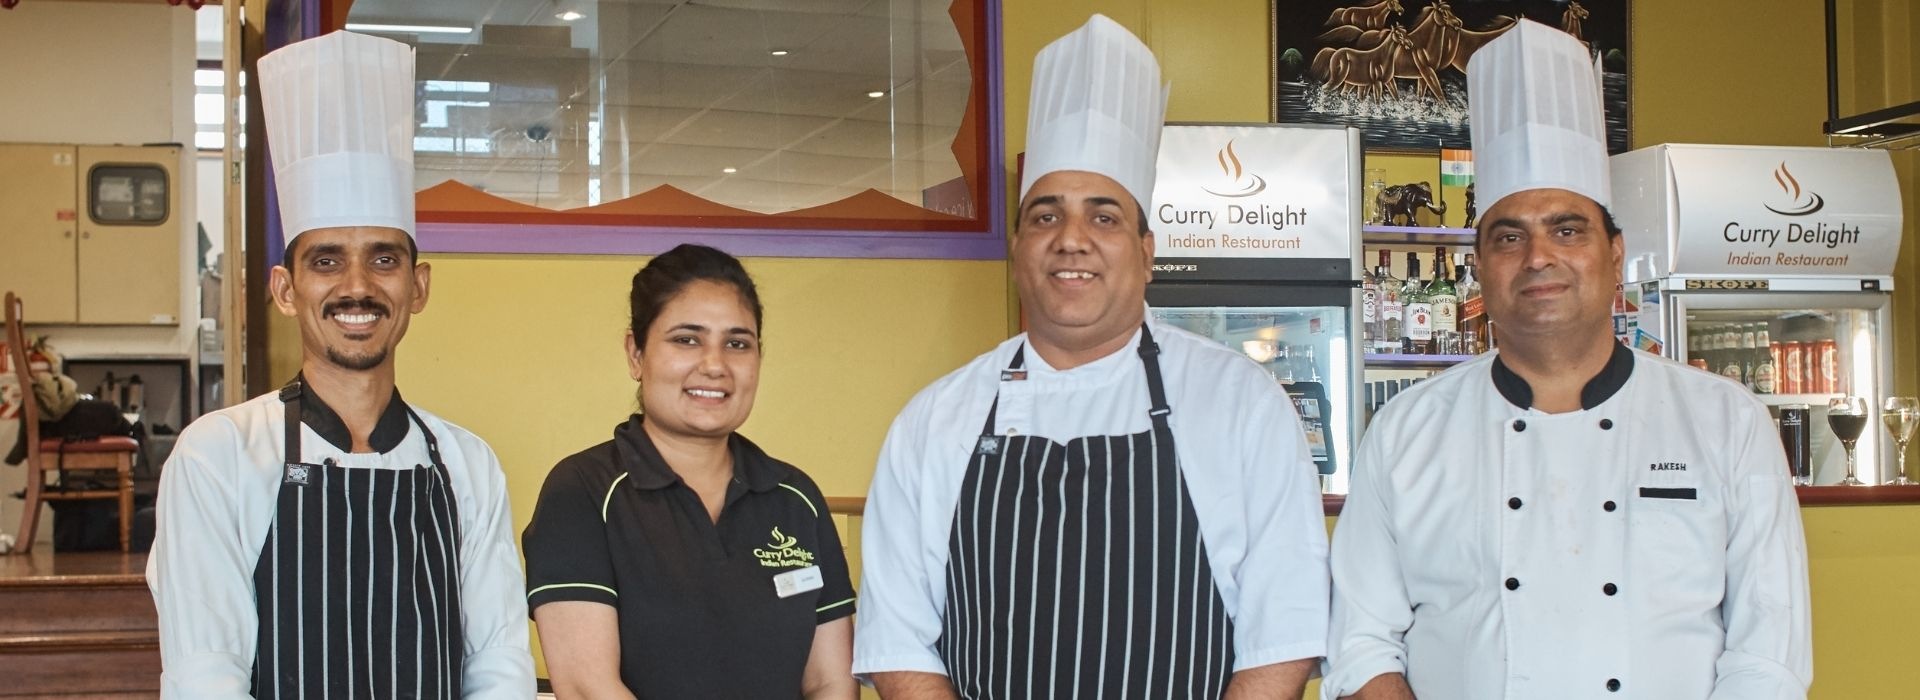 curry delight team morrinsville